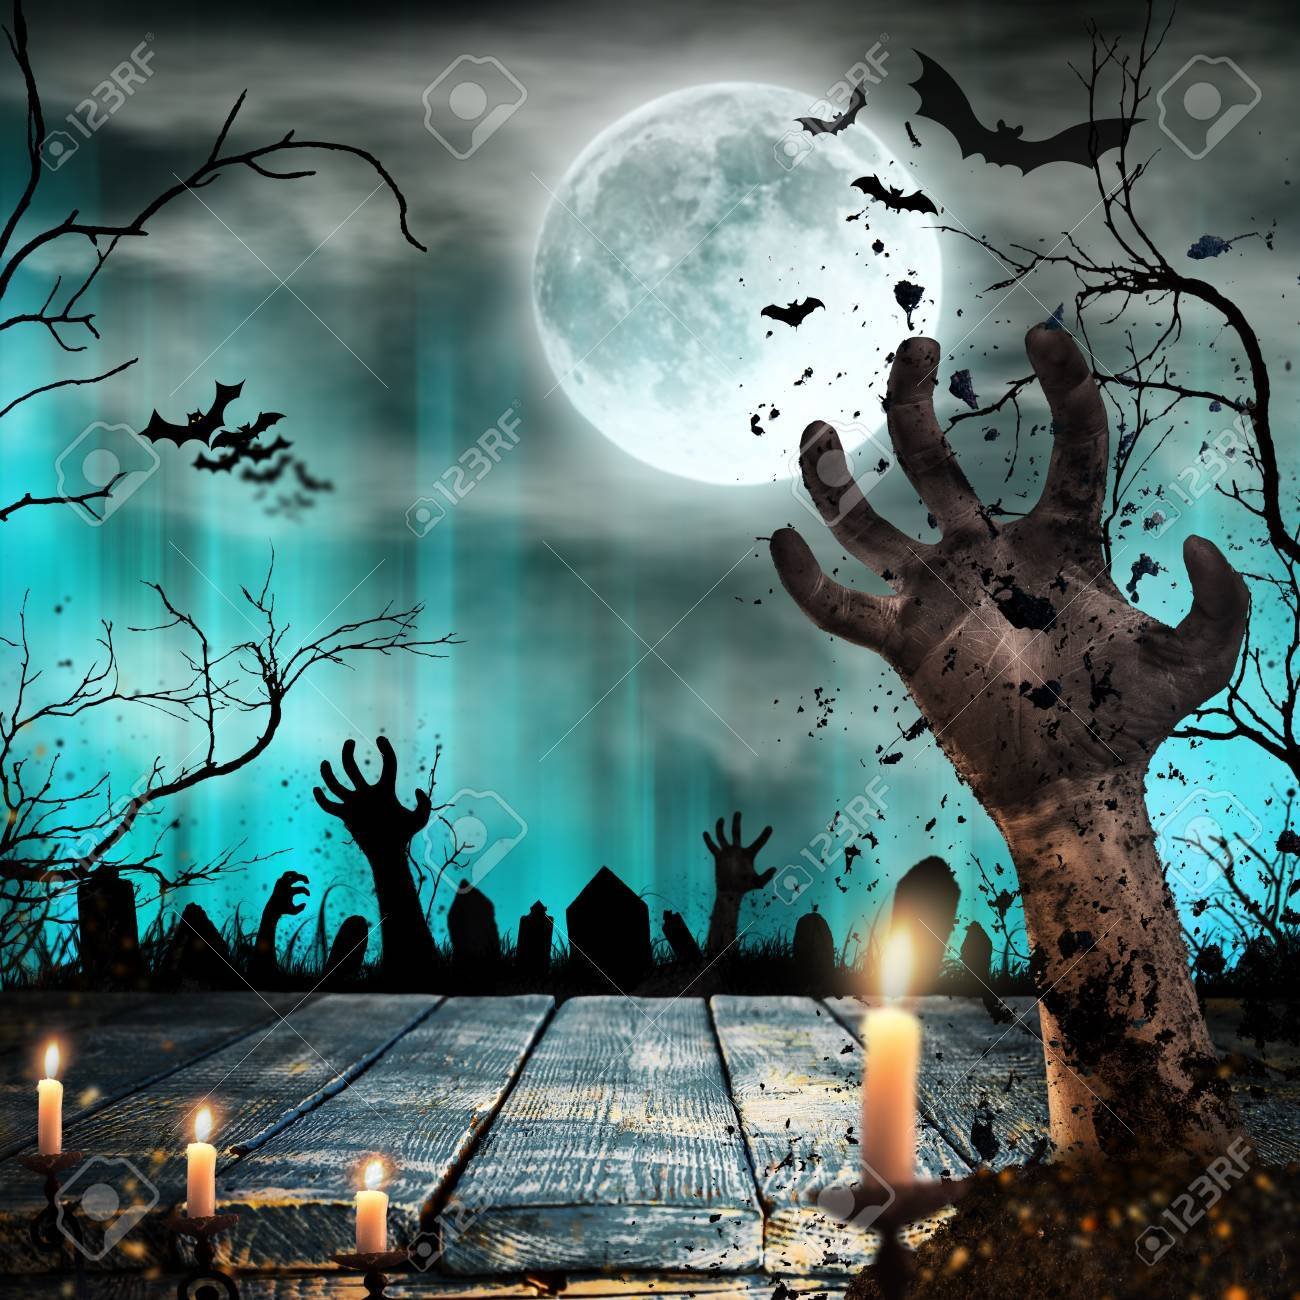 Scary Halloween Background With Zombie Hands Stock Photo Picture And Royalty Free Image Image 87418618